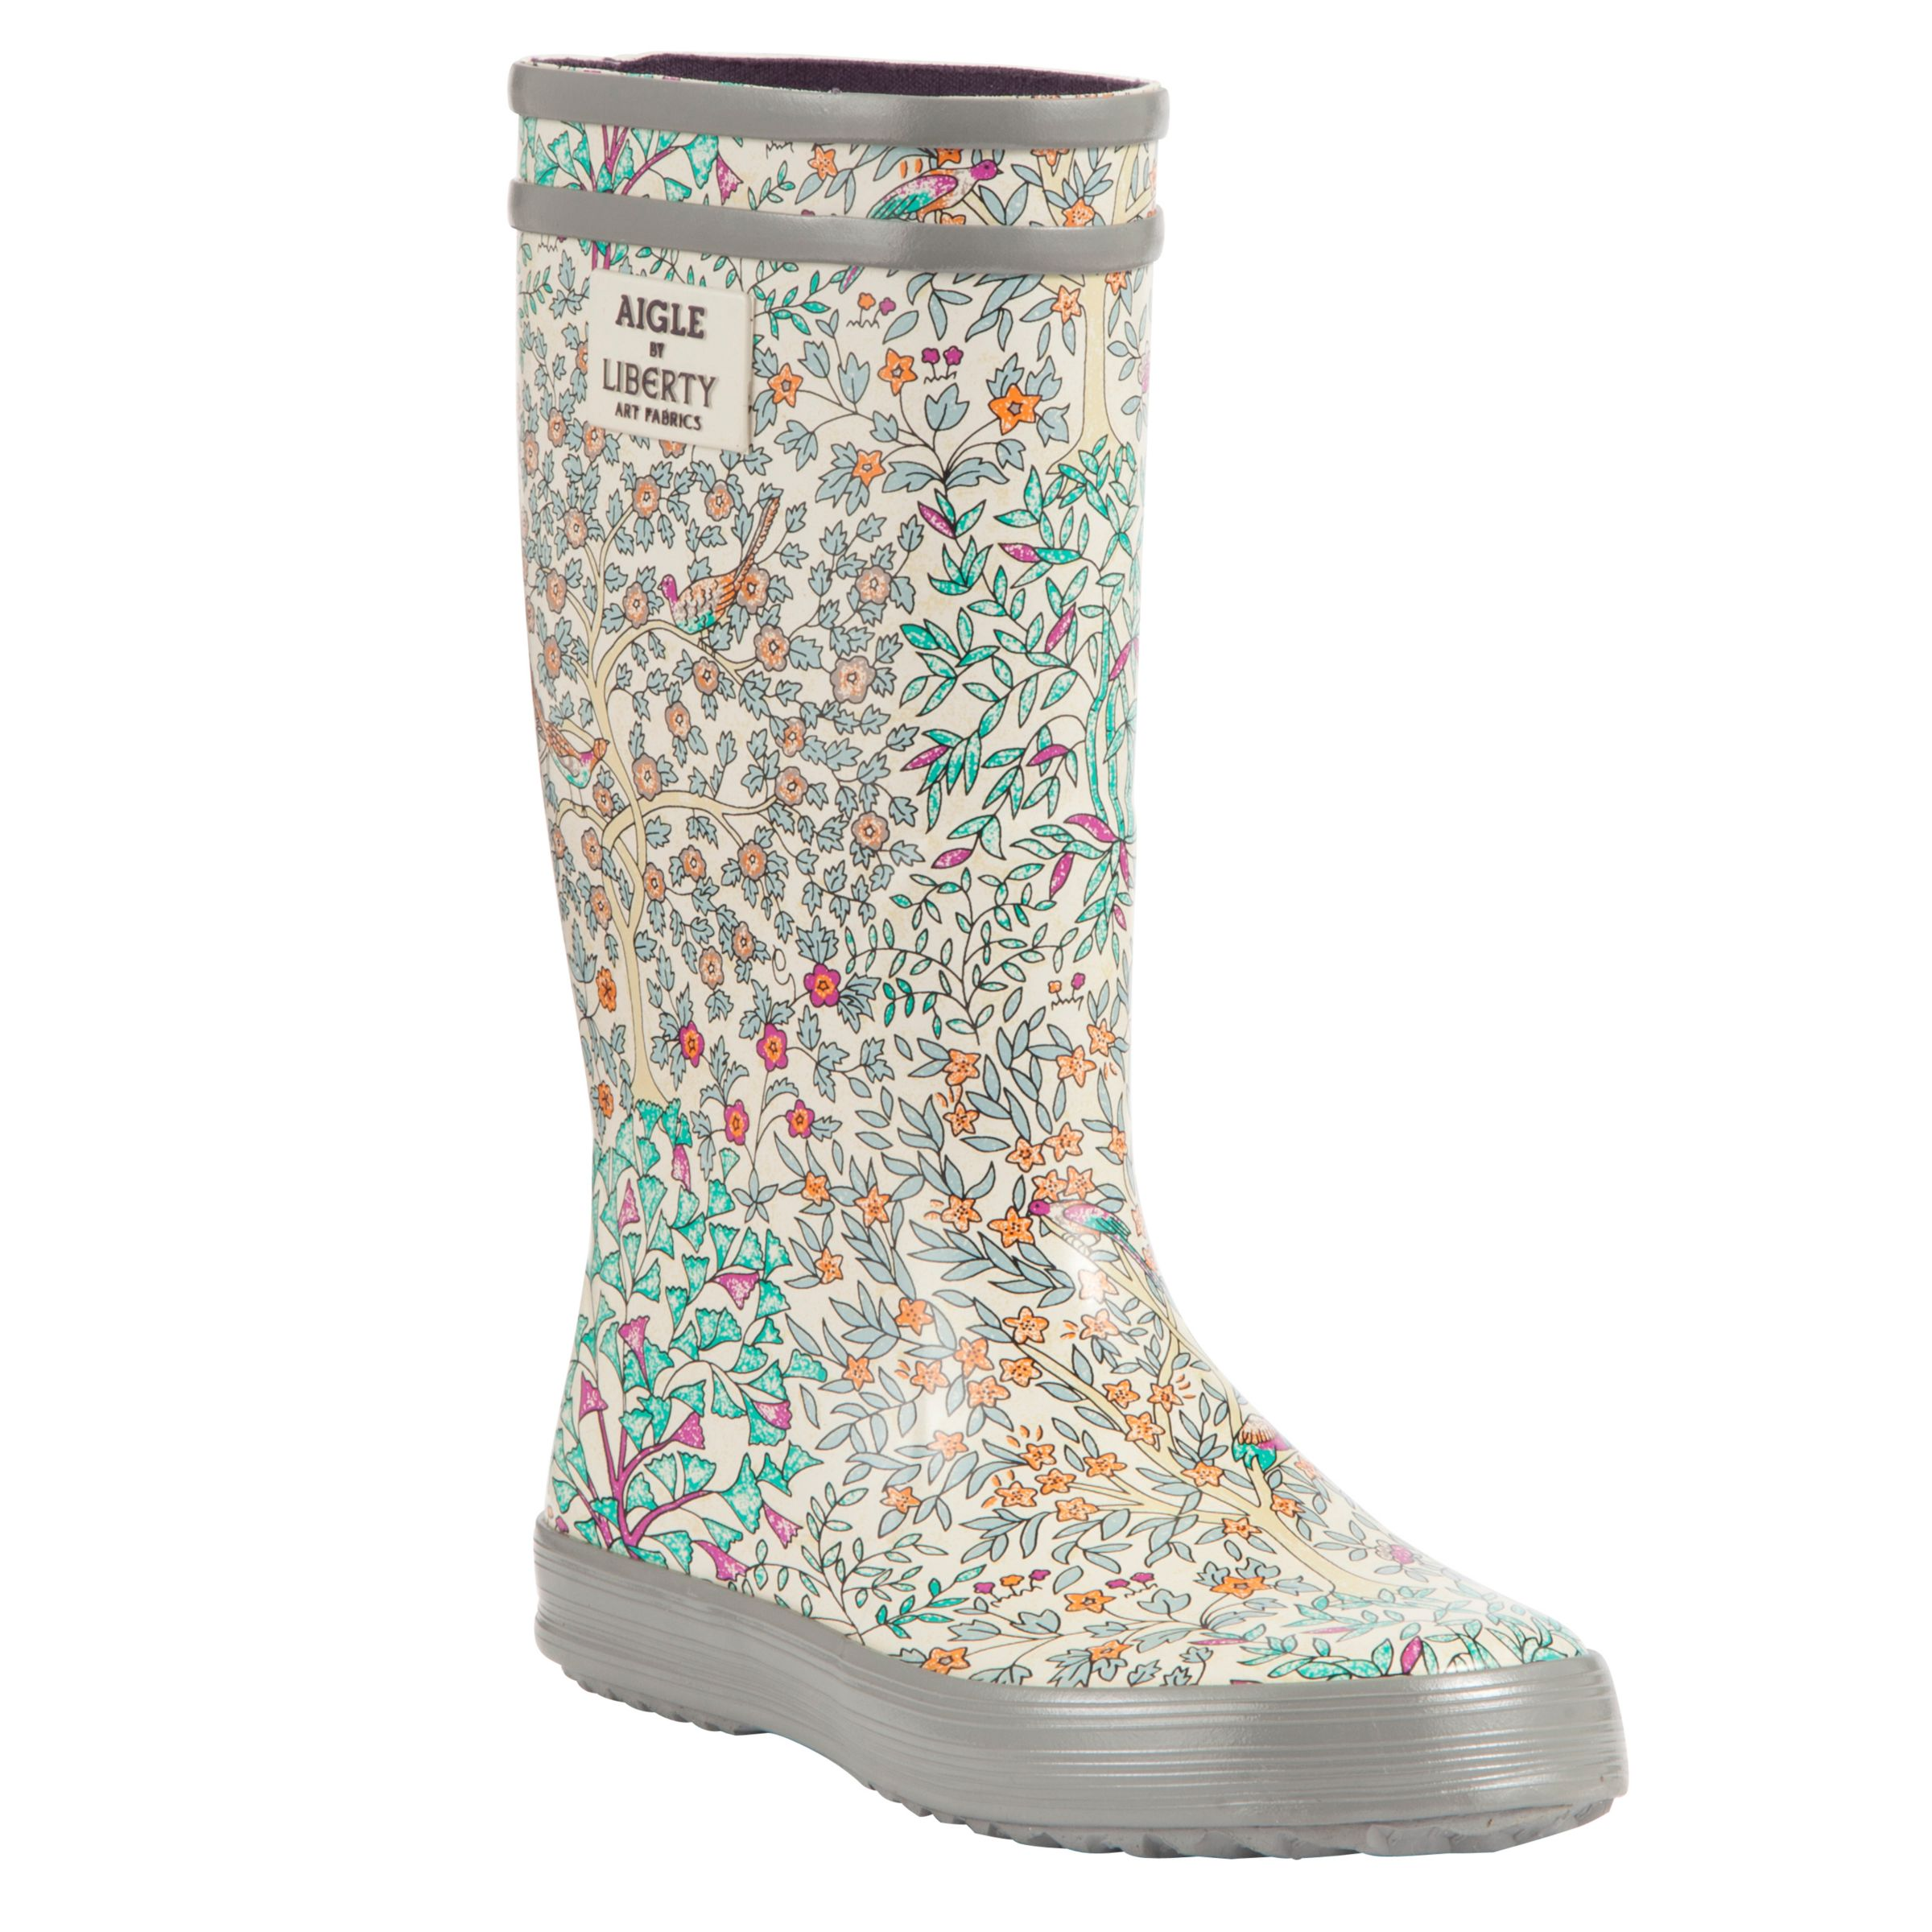 low priced 139ee 32717 Aigle Children's Liberty Libpop Wellington Boots, Multi at ...